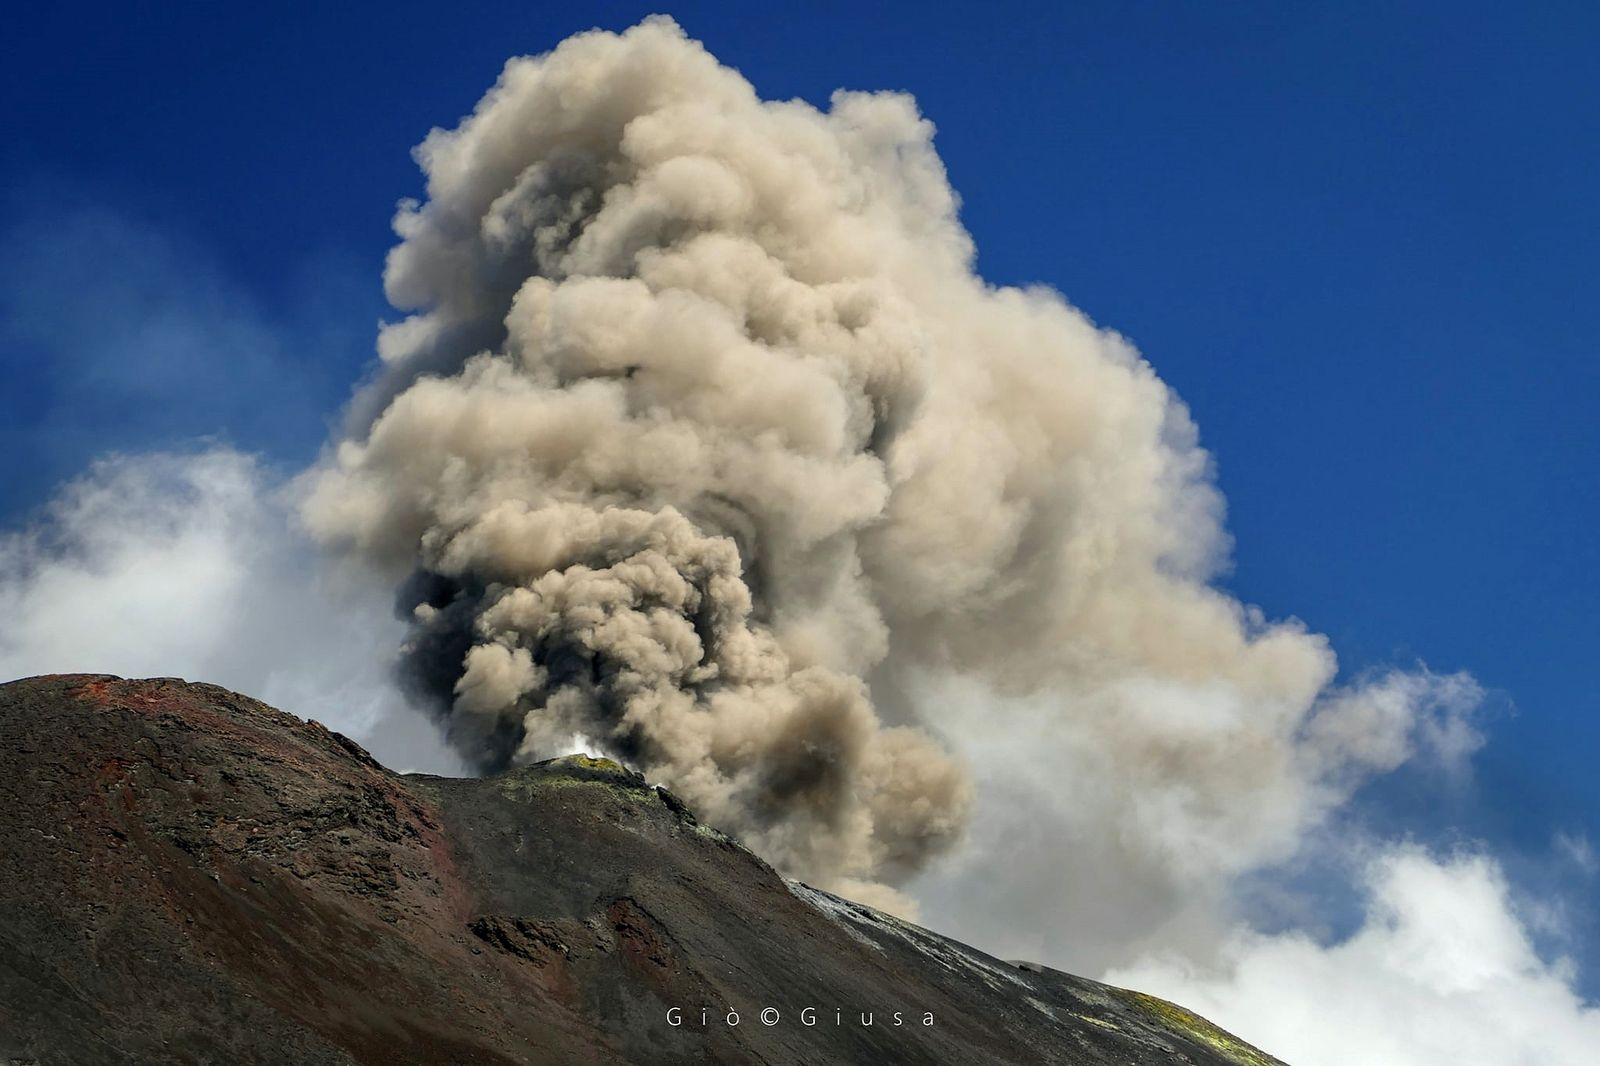 Etna - ash plume from the new south-eastern crater on 08/29/2020 - photo Gio Giusa